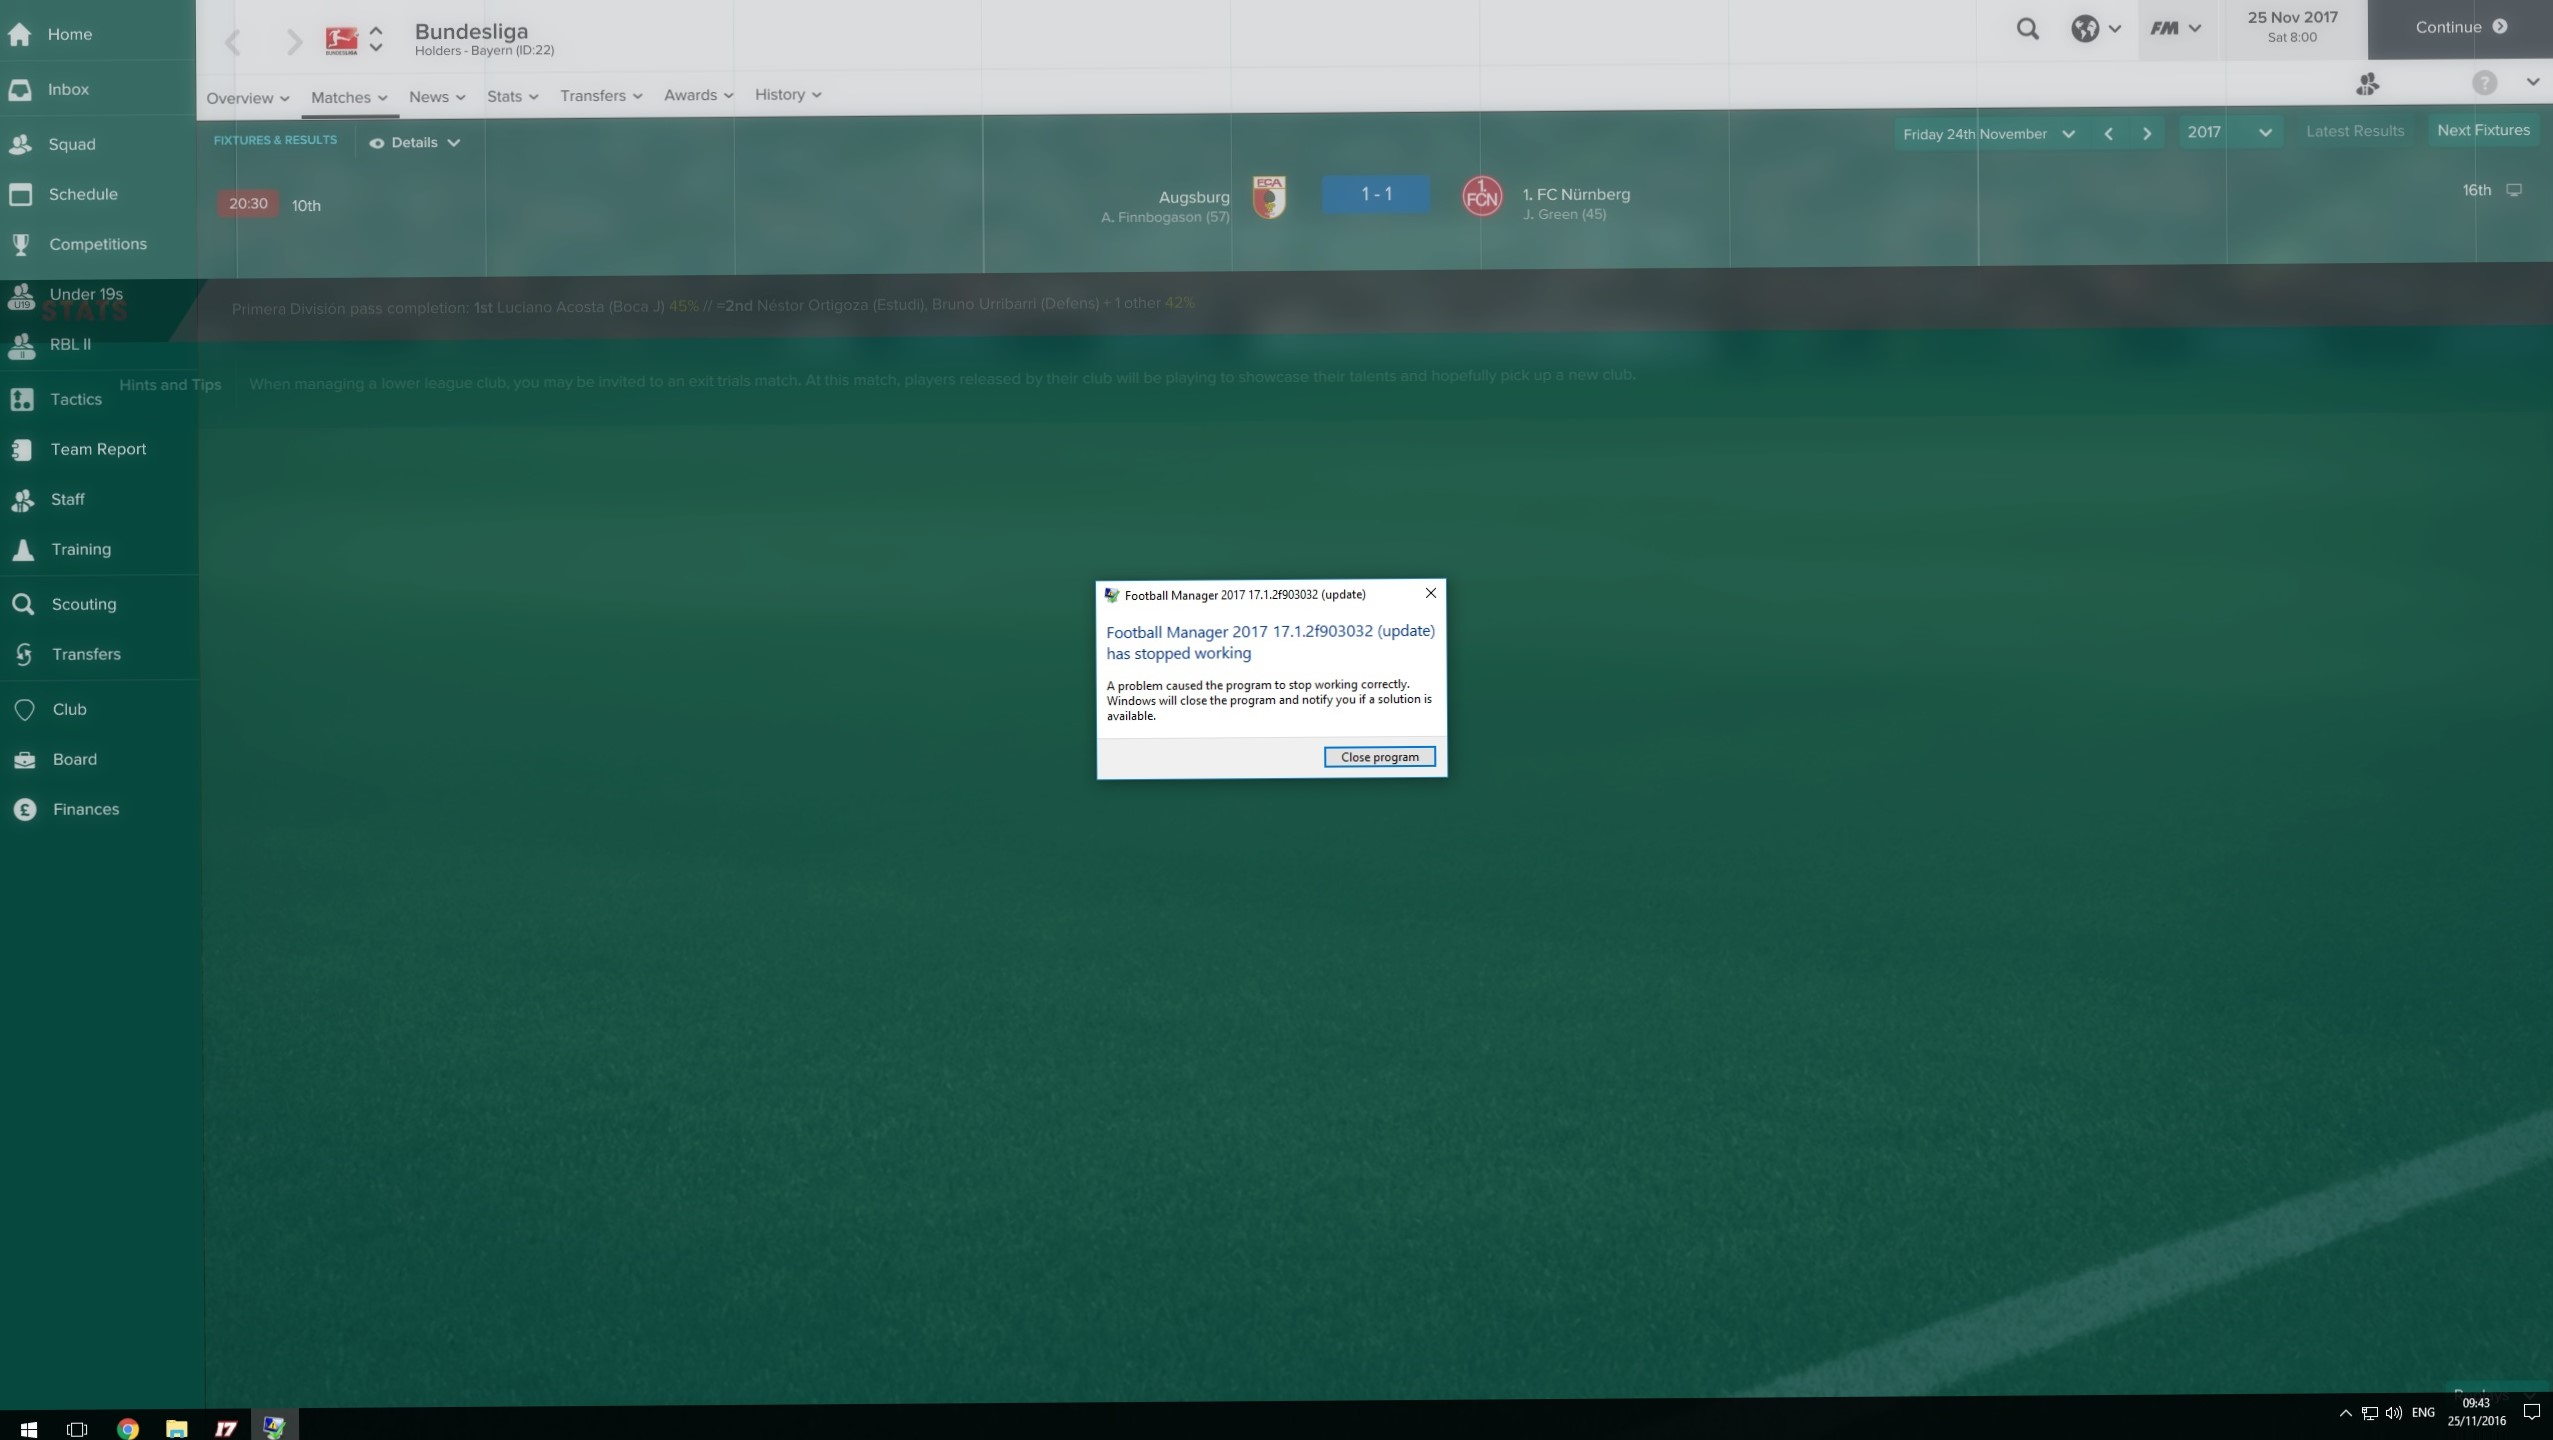 Game started crashing after 131 hours - Crashes and